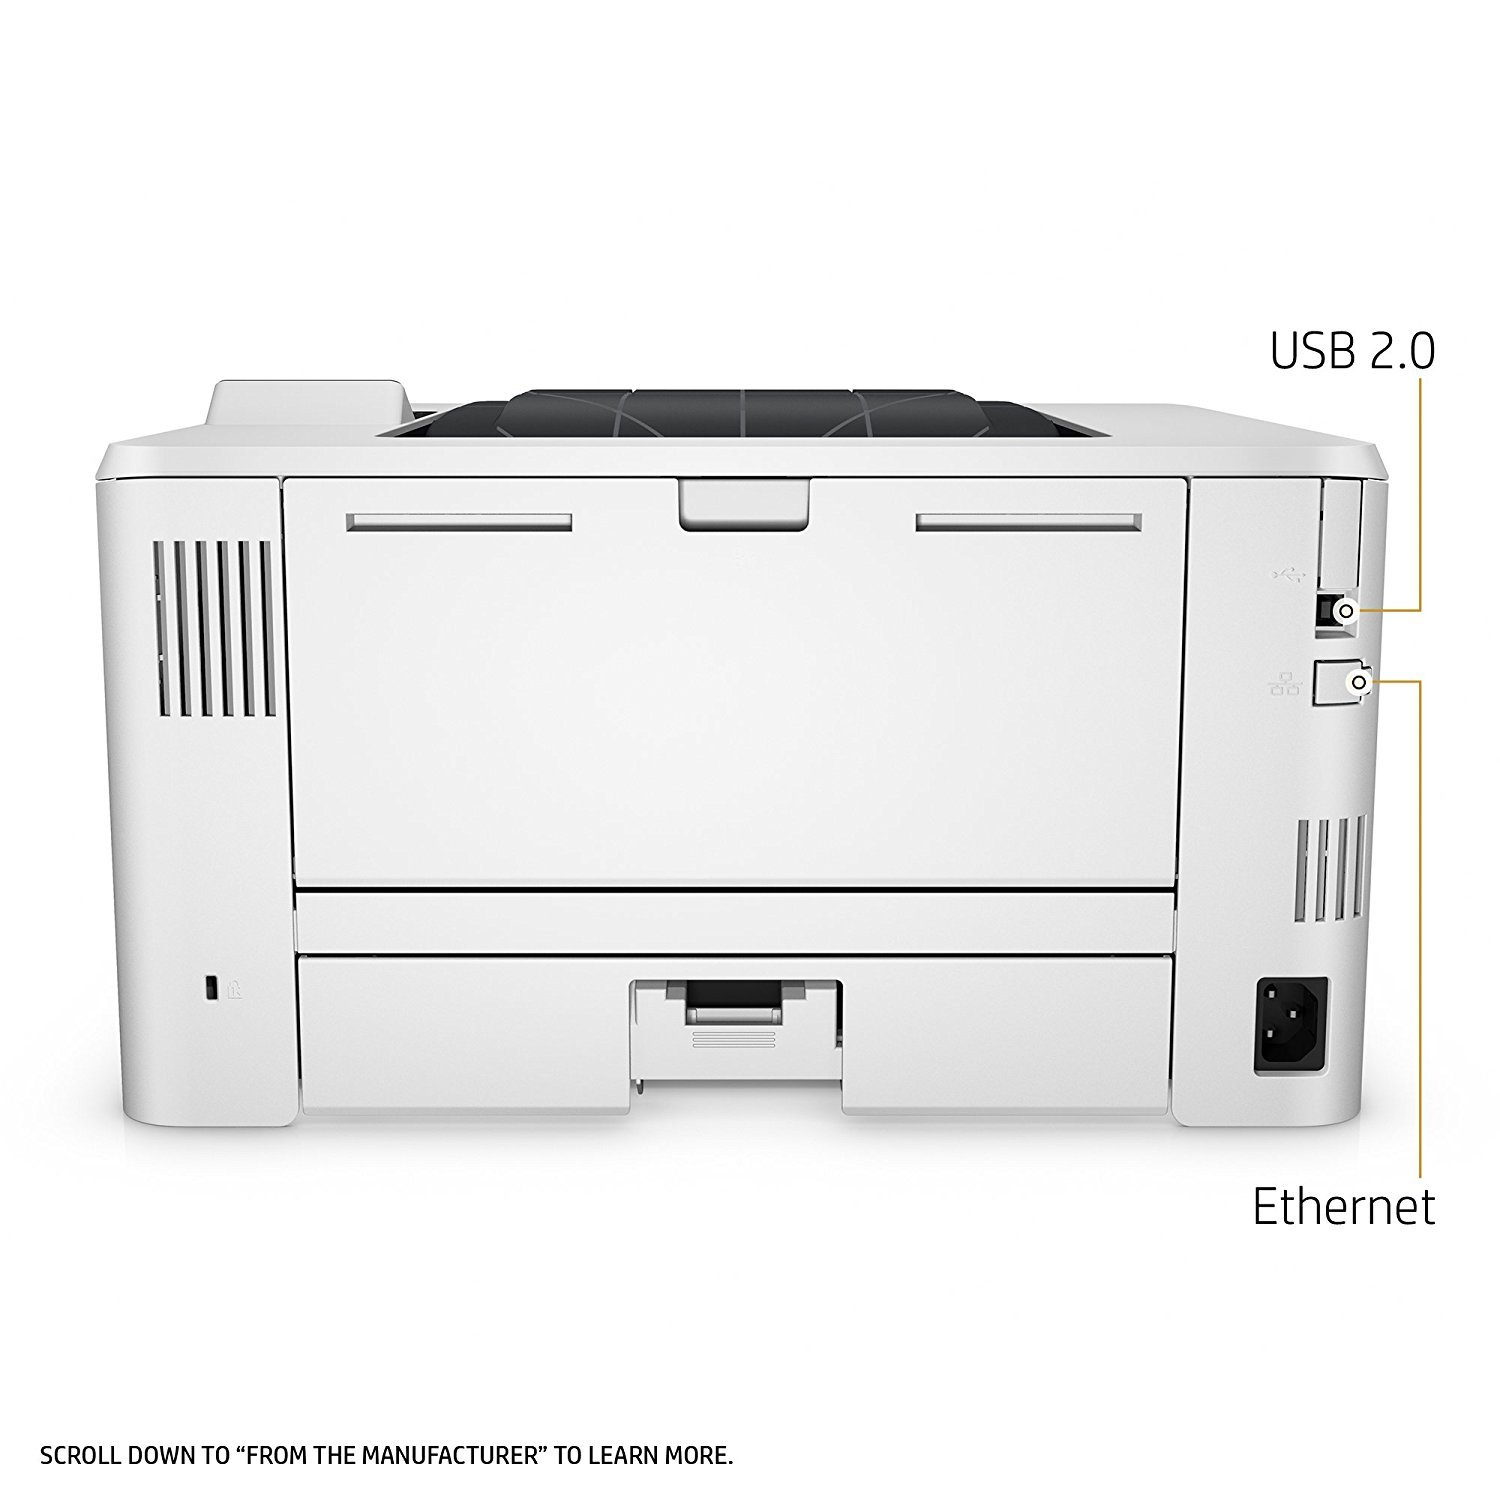 HP LaserJet Pro M402dn Laser Printer with Built-in Ethernet & Double-Sided Printing, Amazon Dash Replenishment ready (C5F94A) by HP (Image #8)